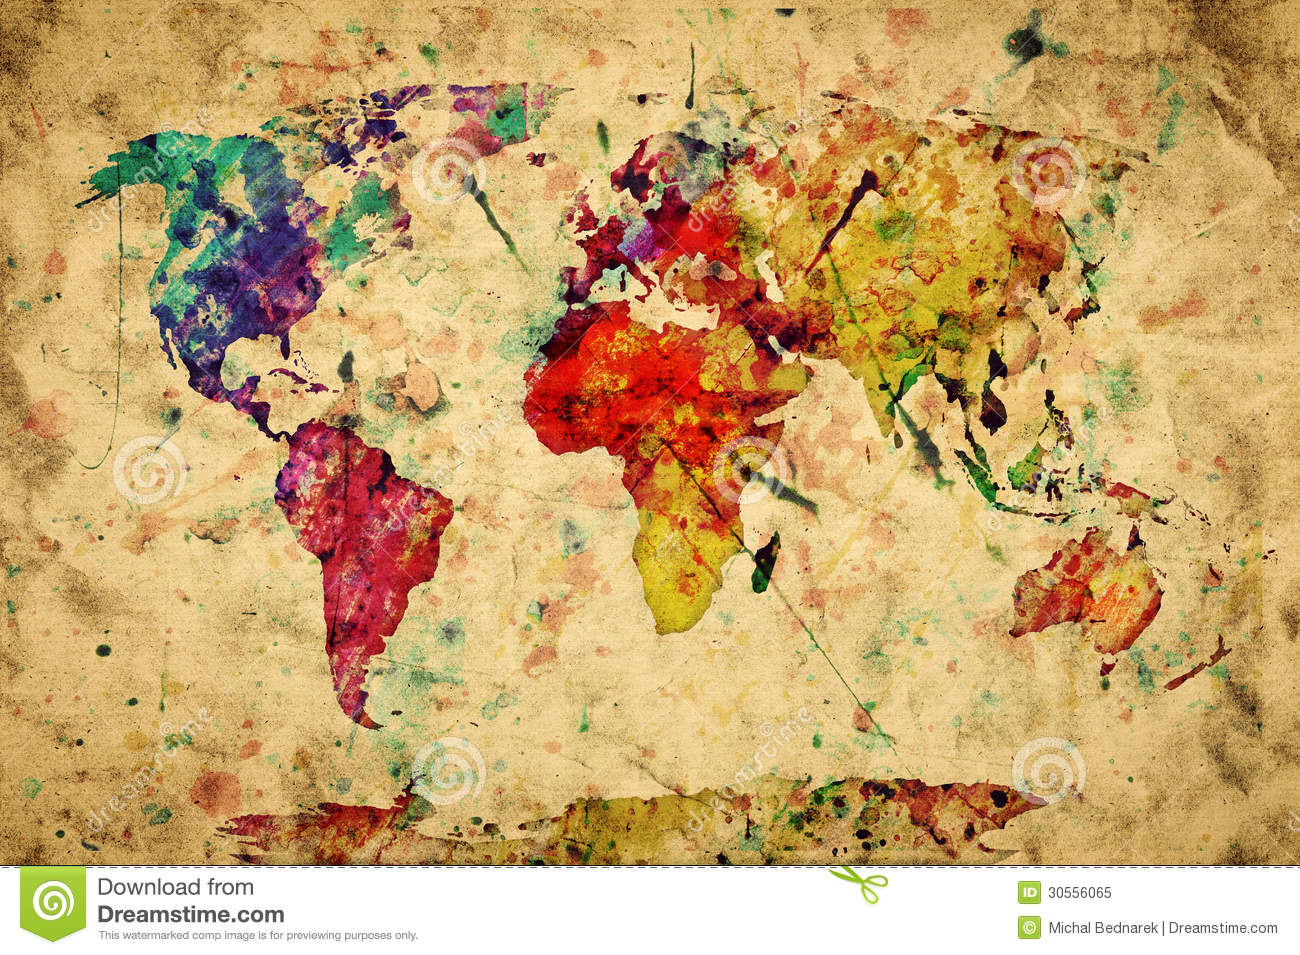 Vintage world map colorful paint stock illustration illustration download comp gumiabroncs Image collections